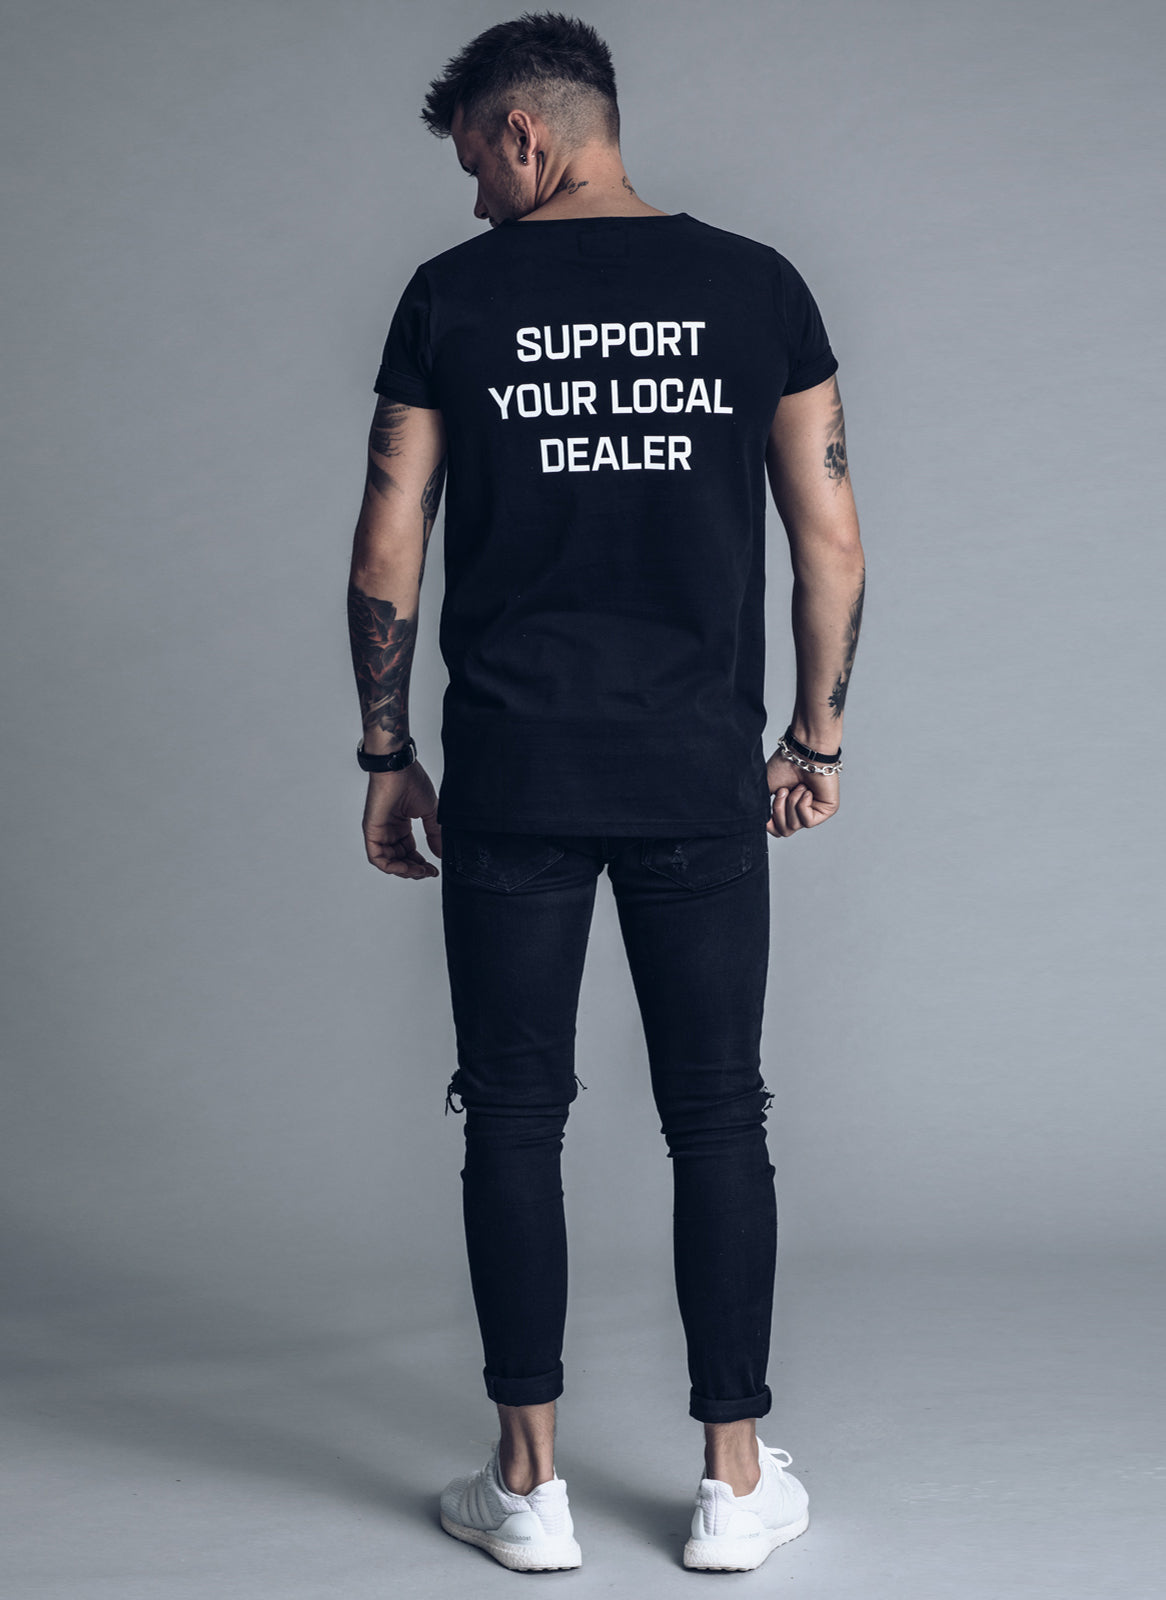 Support Your Local Dealer - Black t-shirt - We love techno